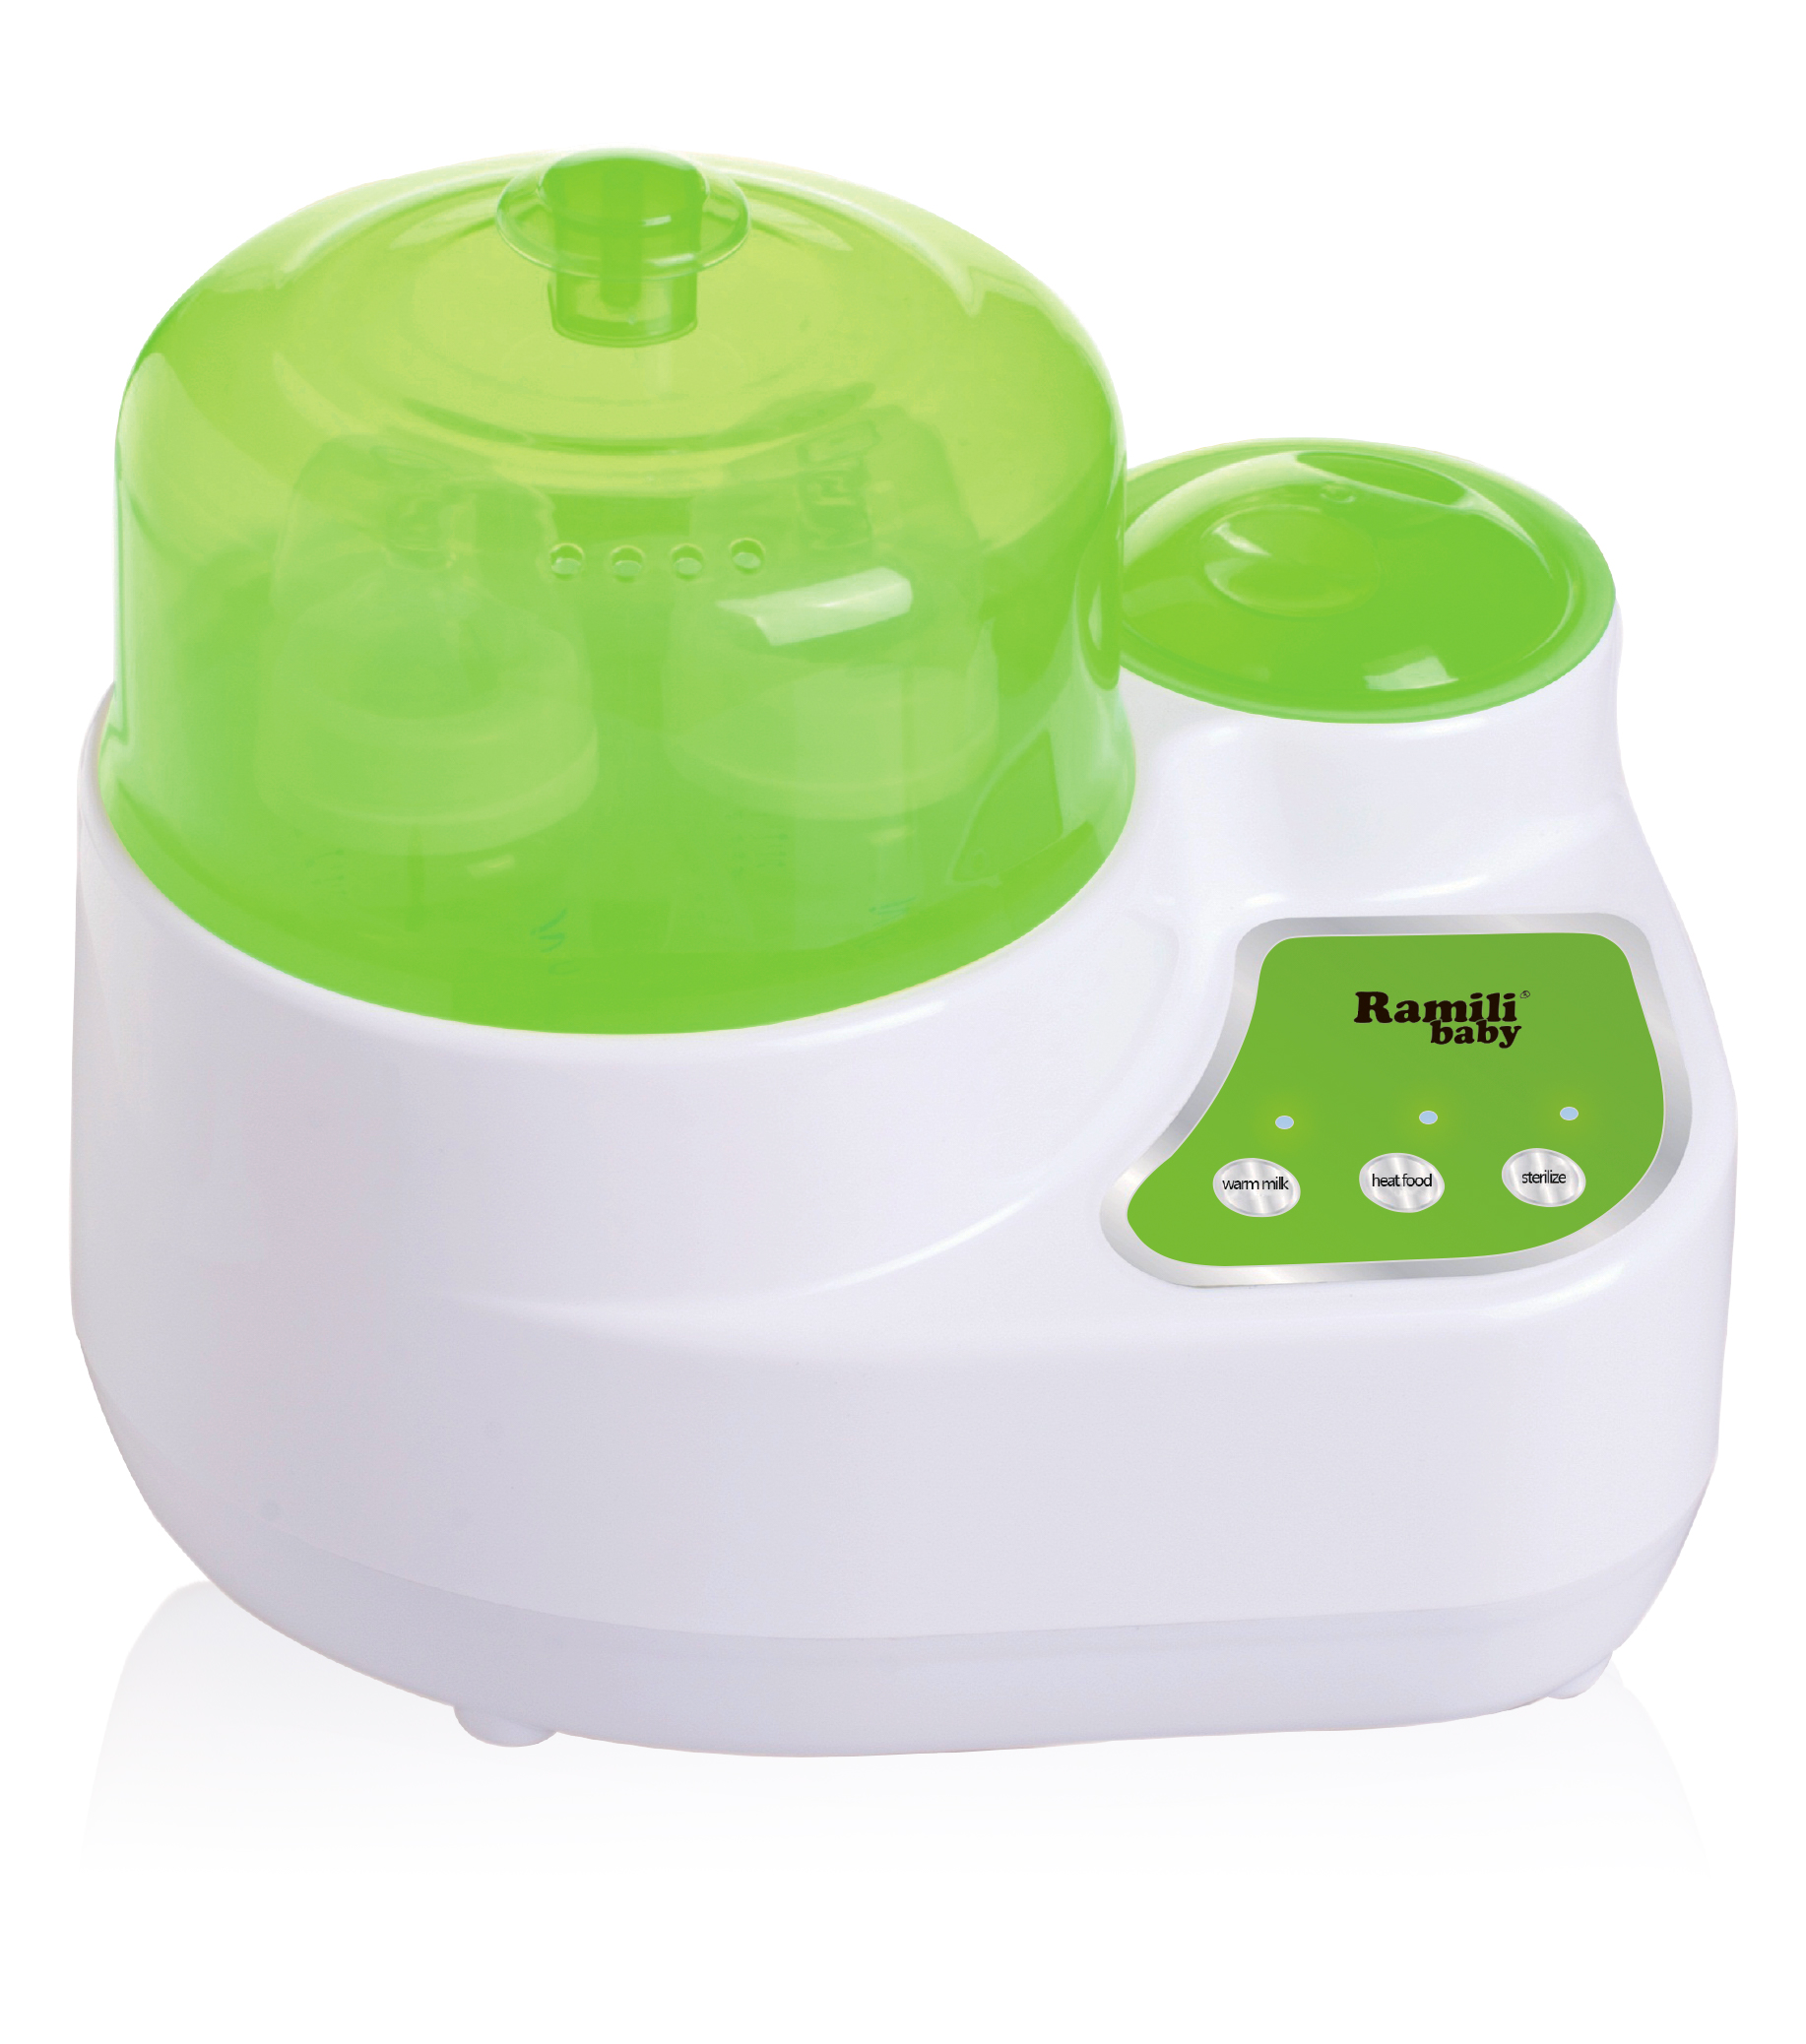 Ramili<sup>®</sup> 3 in 1 Baby Bottle Sterilizer &#038; Warmer BSS250